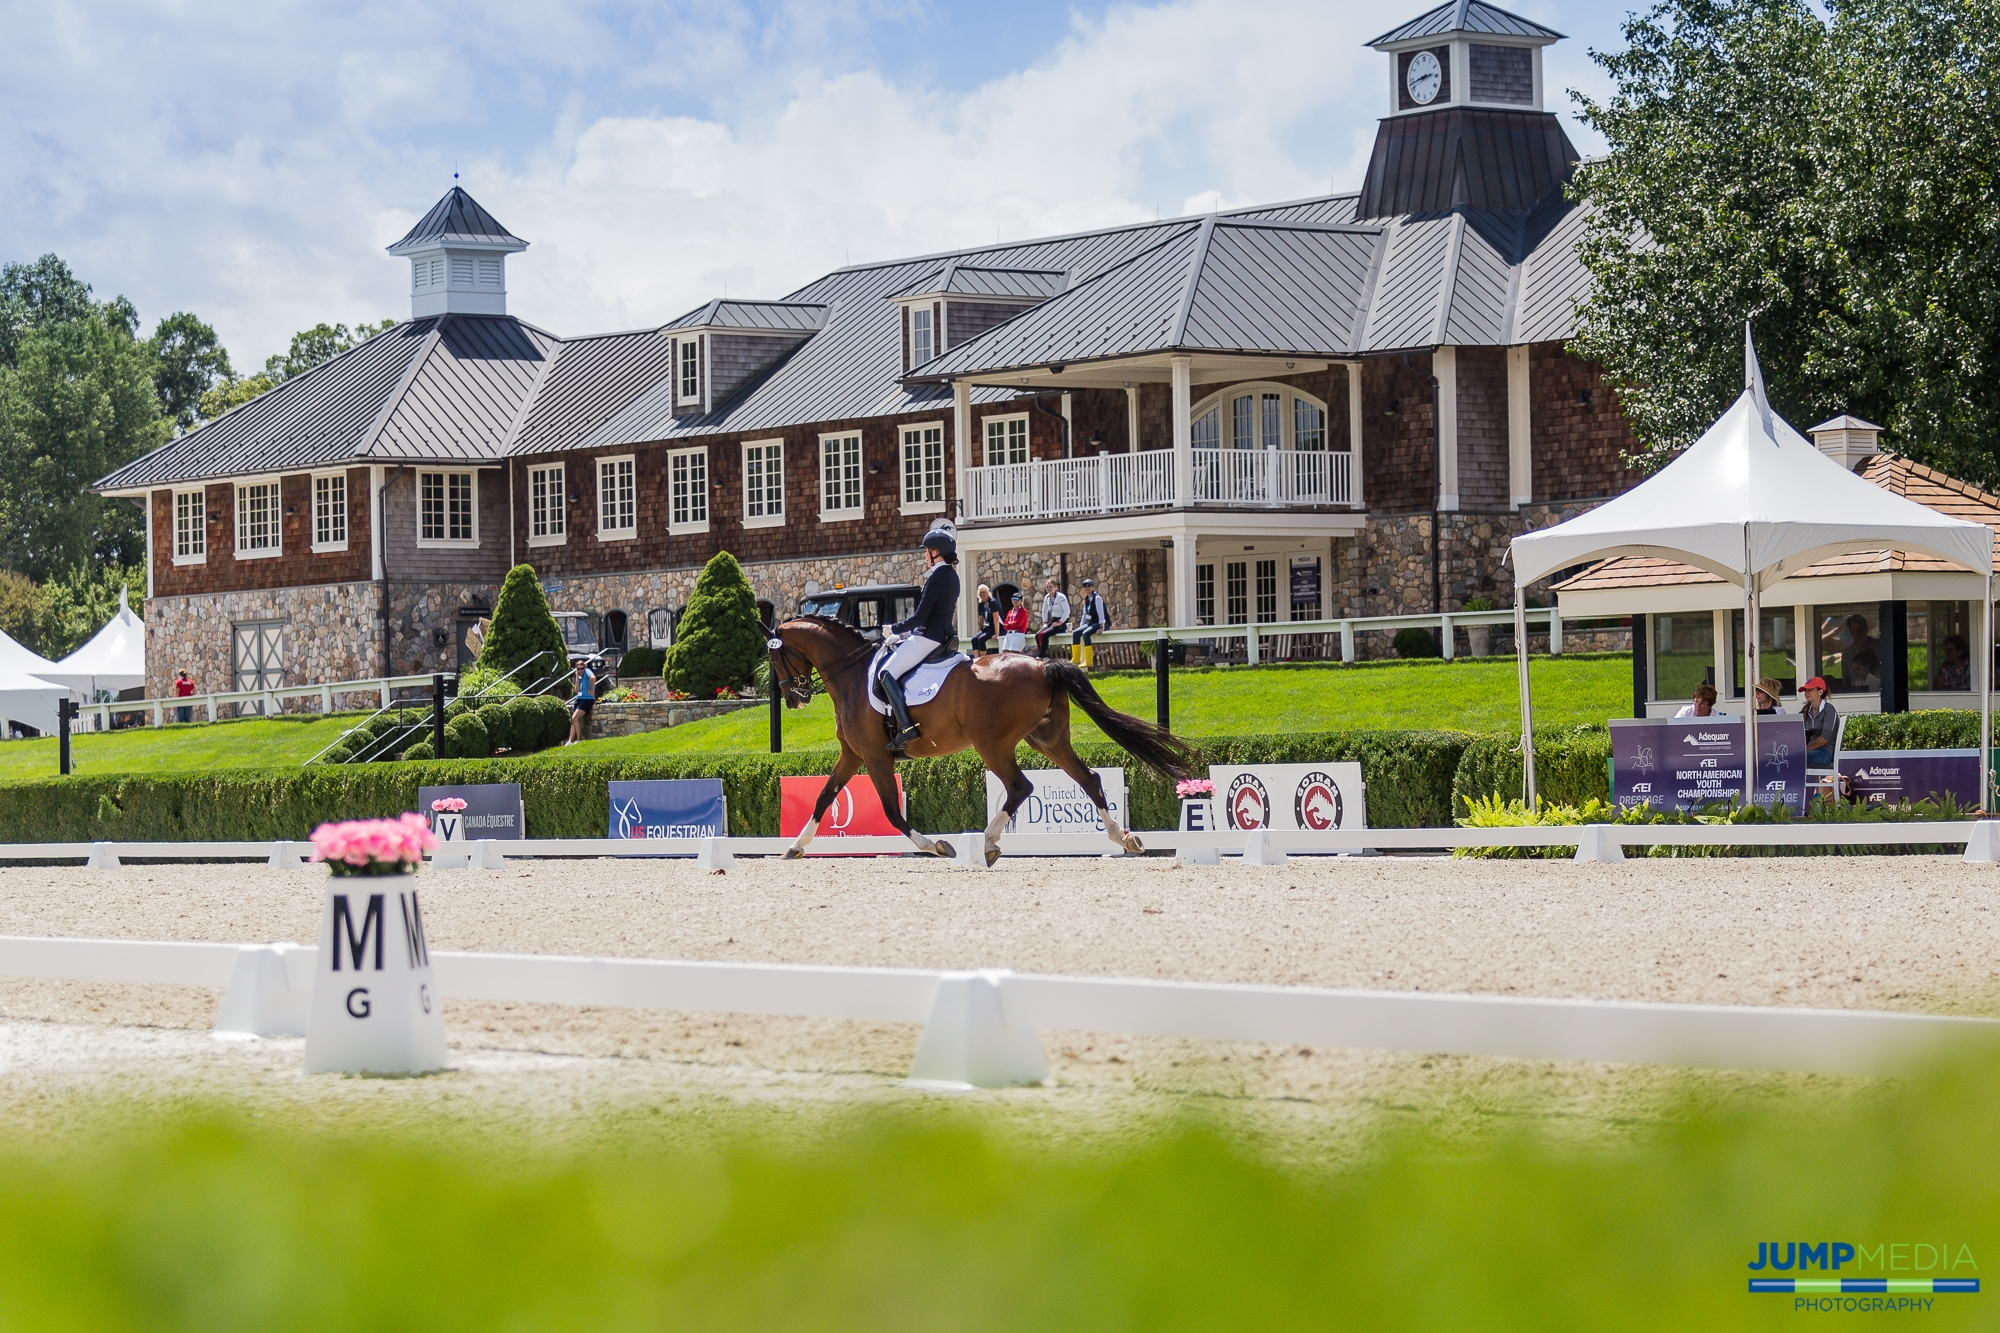 The 2018 Adequan®/FEI North American Youth Championships, presented by Gotham North, featured five days of dressage and show jumping competition hosted at Old Salem Farm in North Salem, NY.<br><b>Photo by <a href='http://www.jumpmediallc.com/'>Jump Media</a></b>